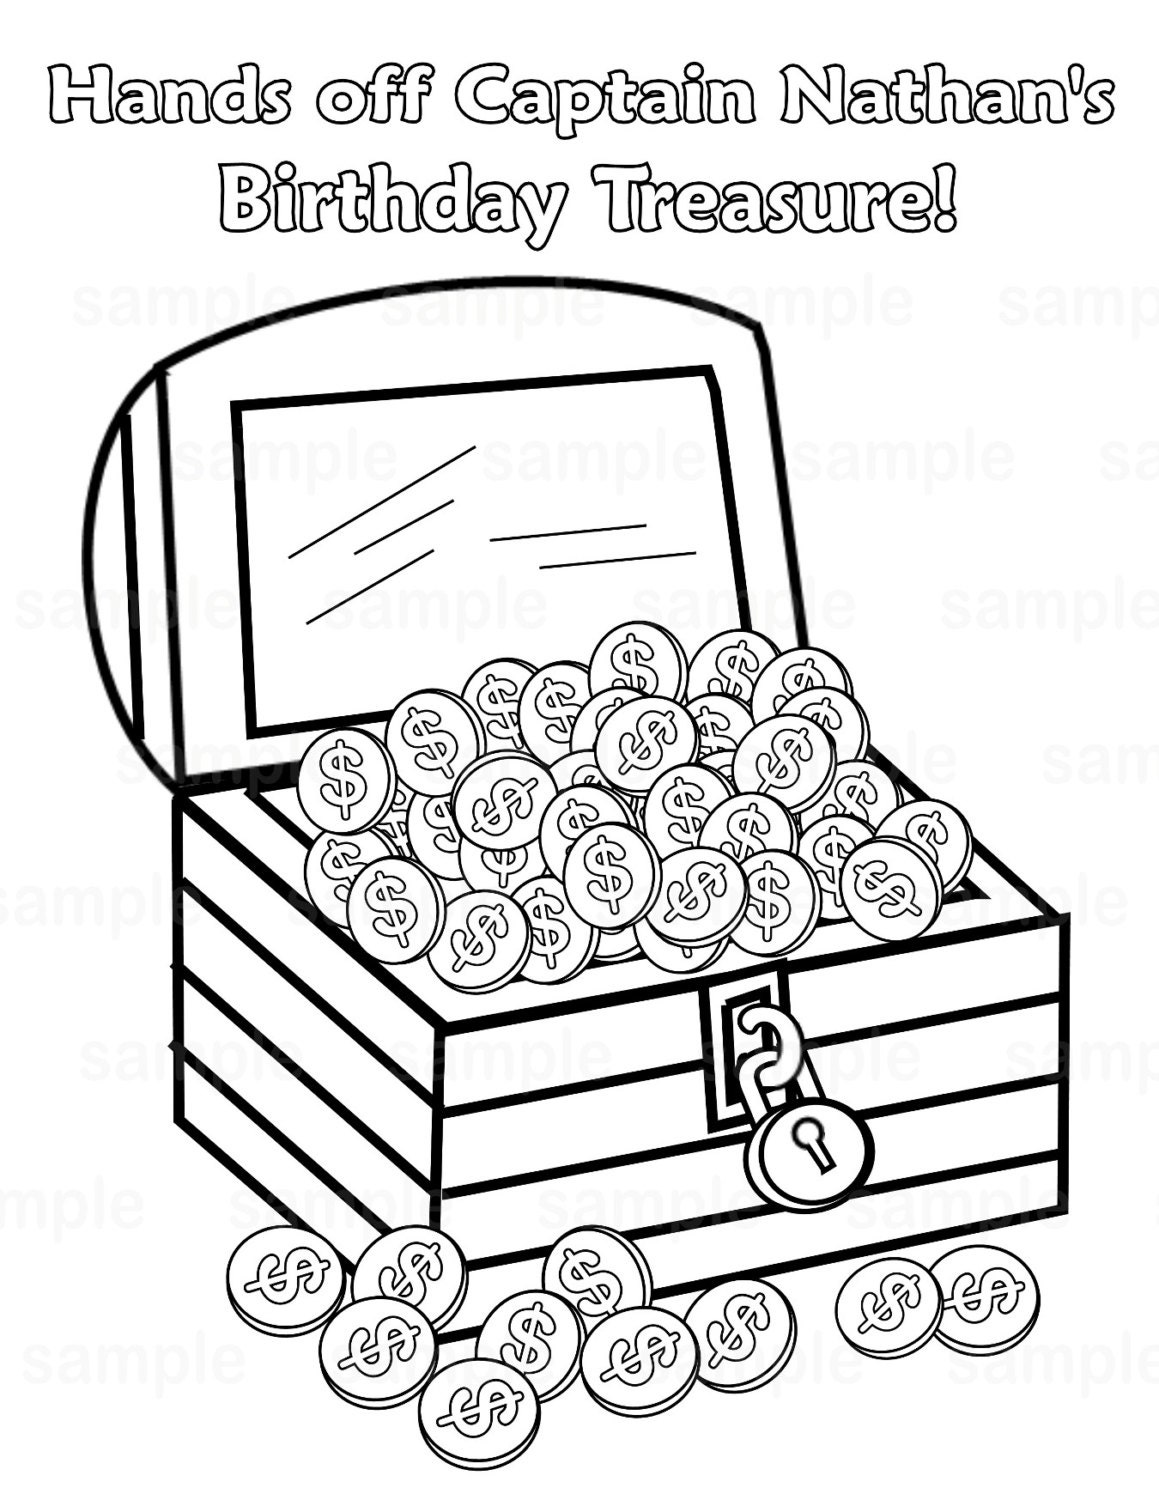 It's just an image of Intrepid Printable Treasure Chests